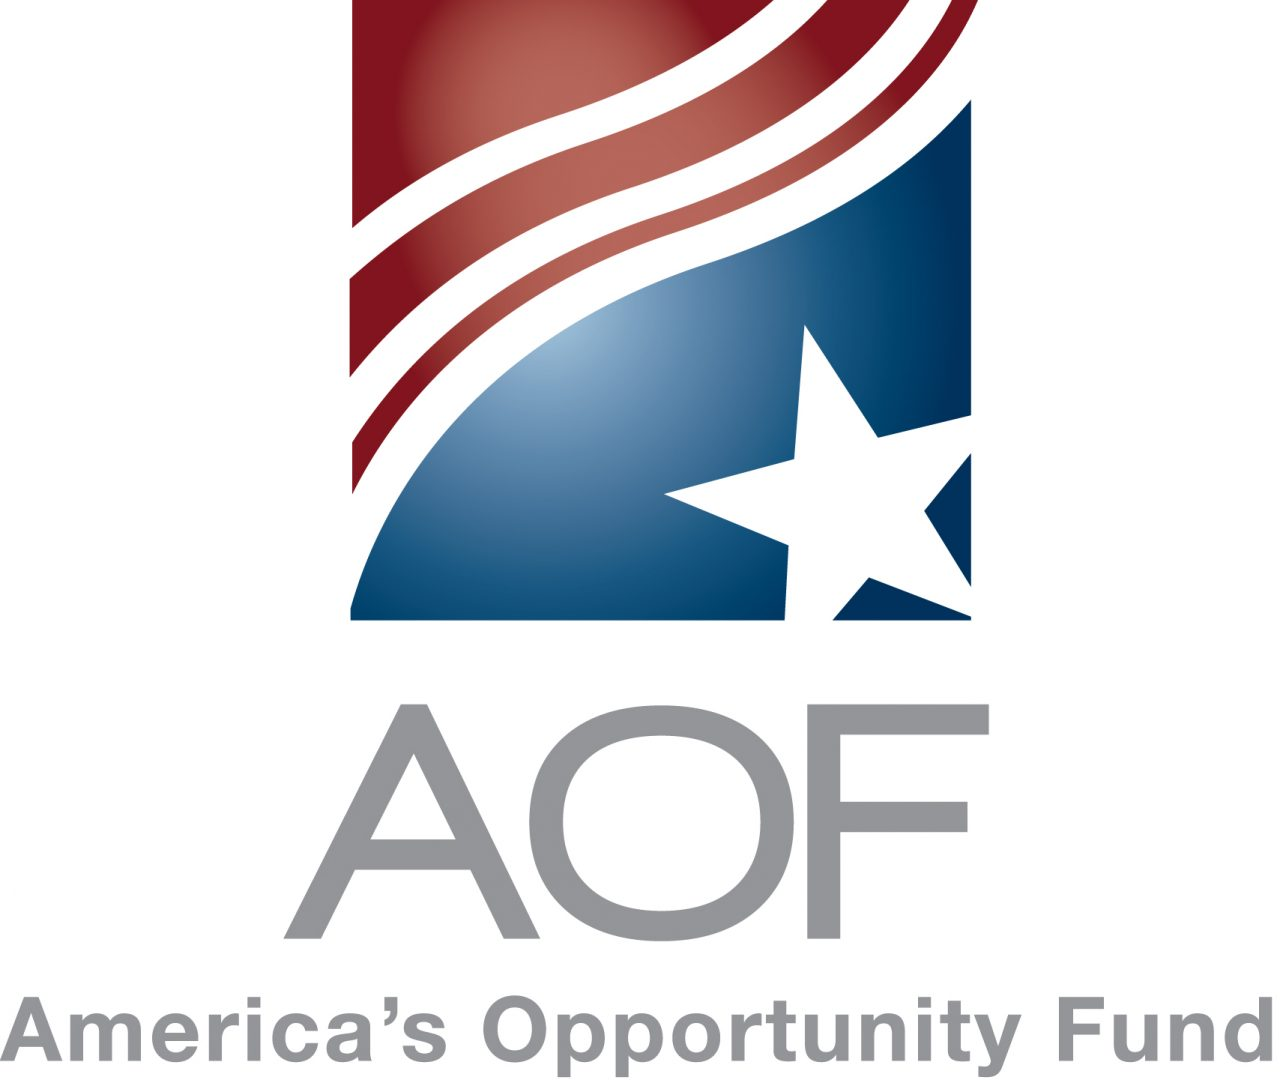 American's Opportunity Fund Logo